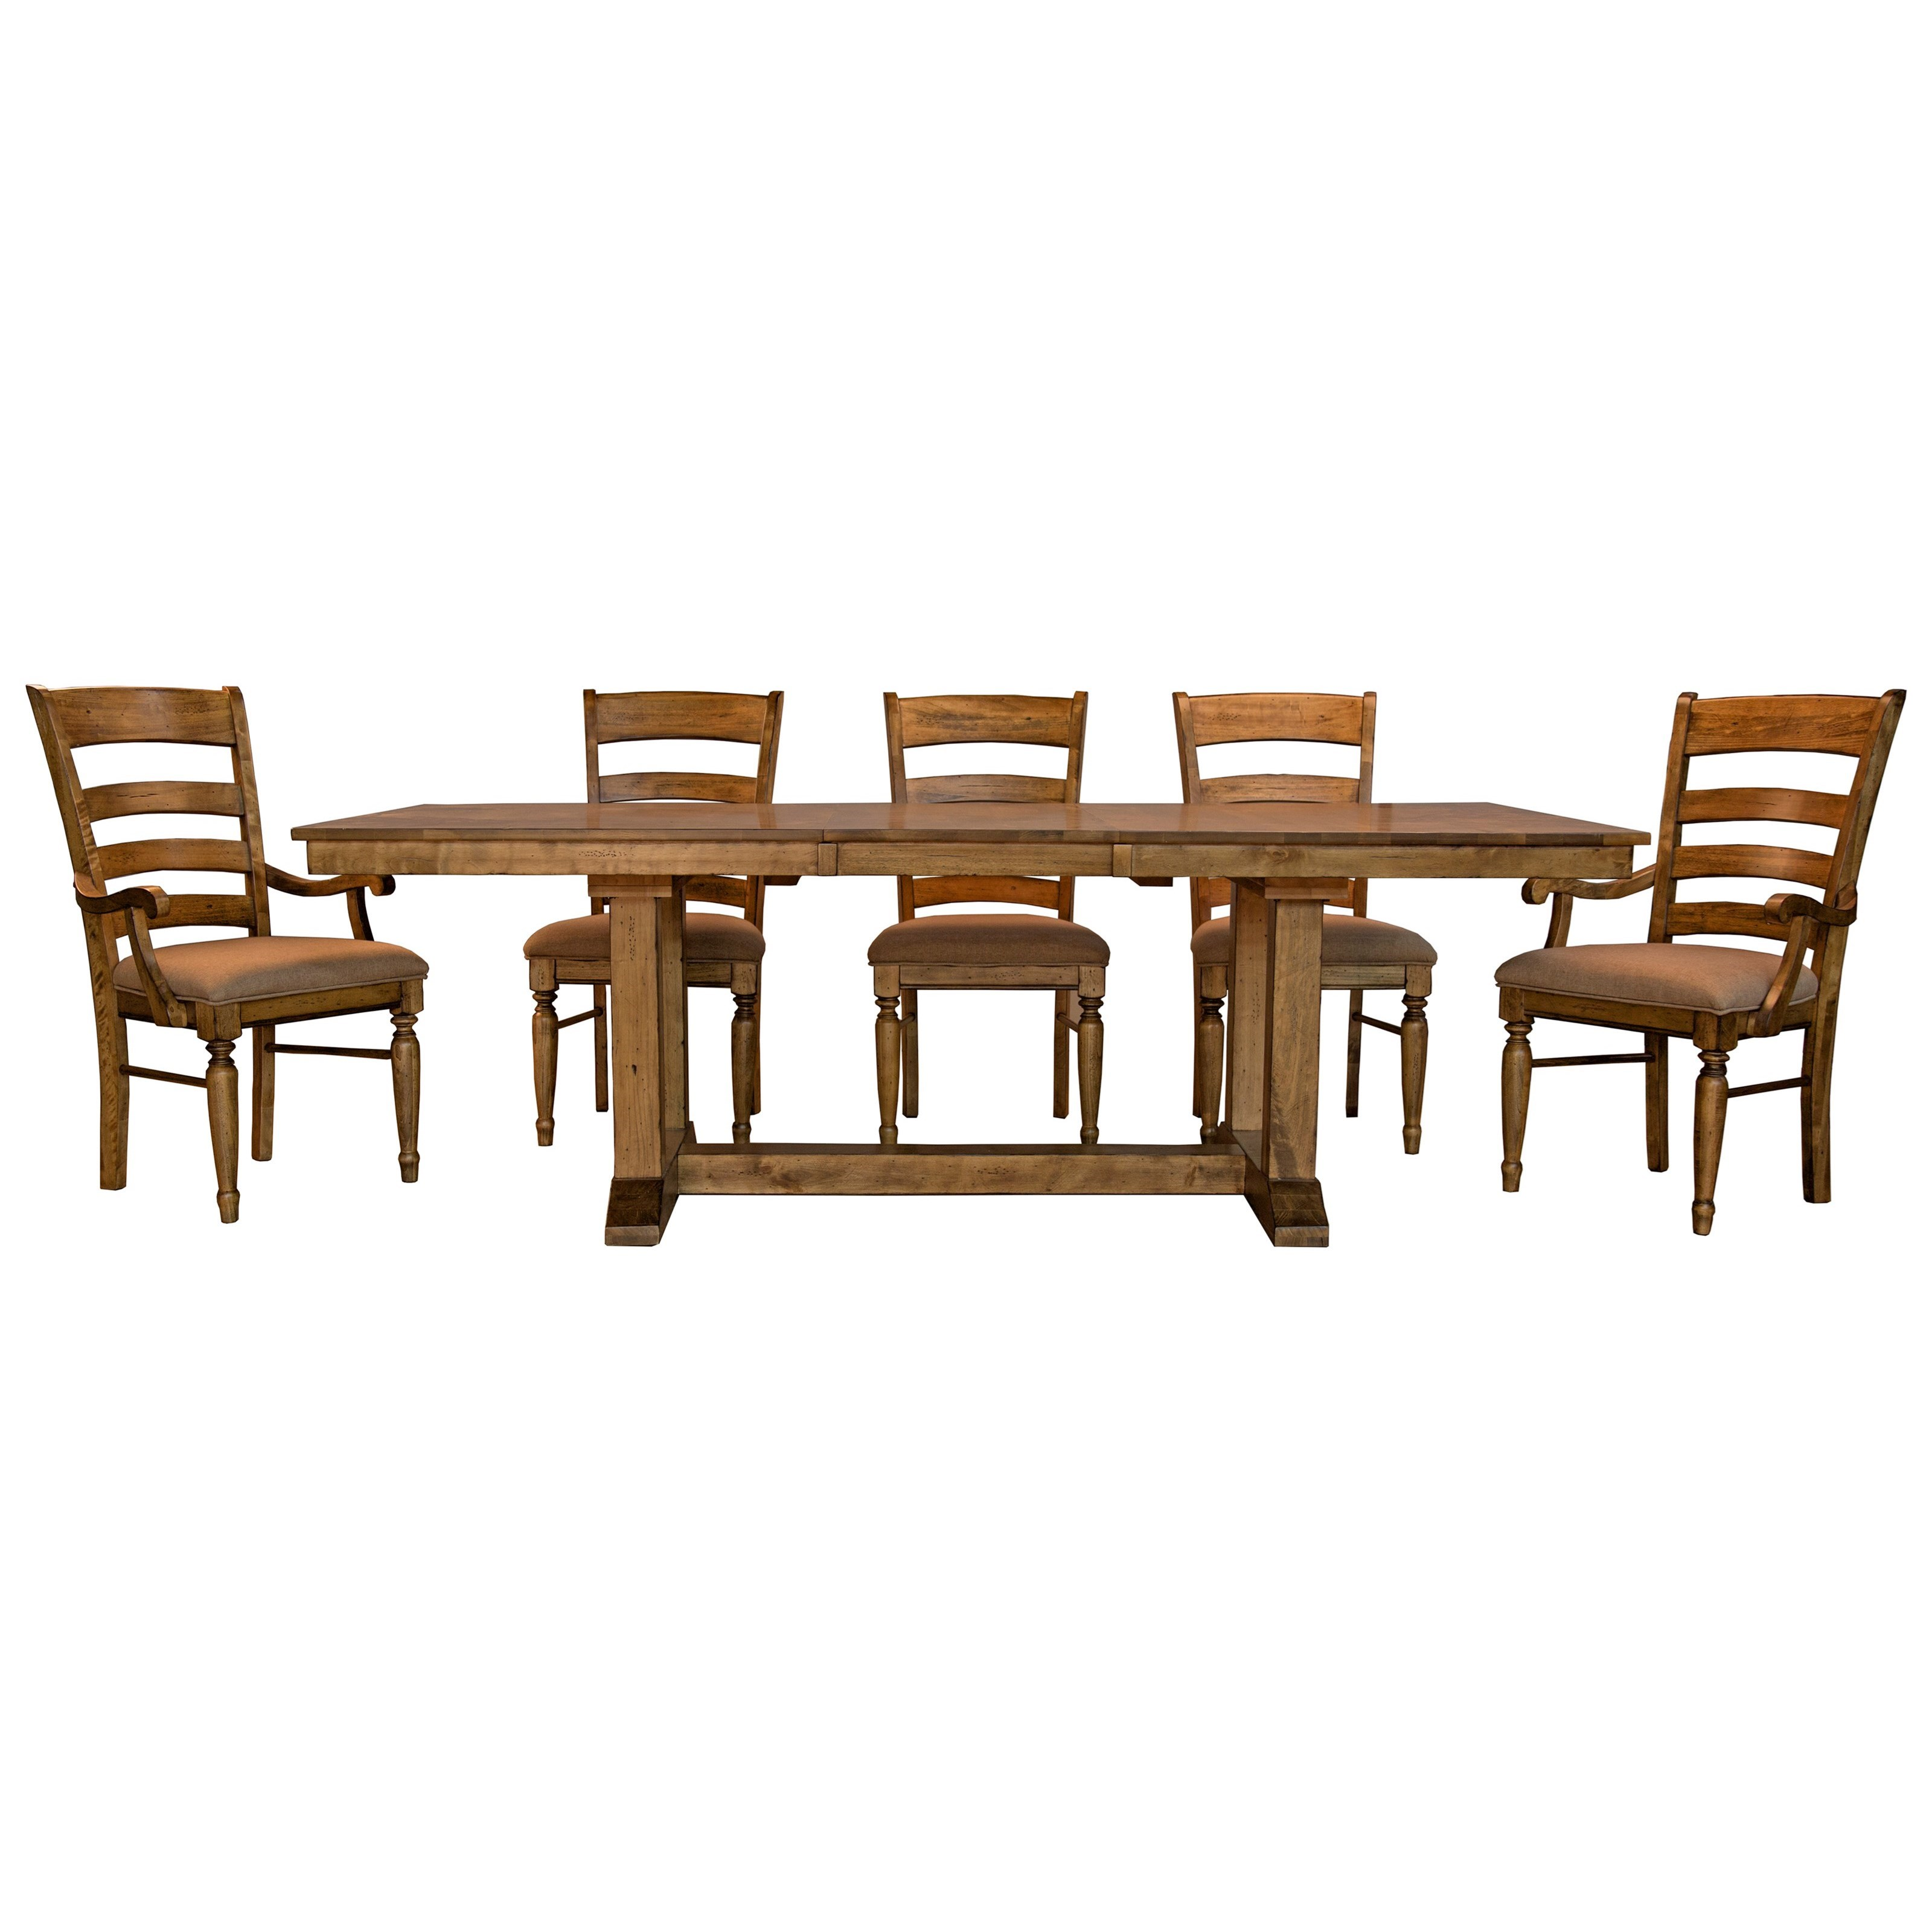 Bennett 6 Piece Trestle Dining Set by A-A at Walker's Furniture